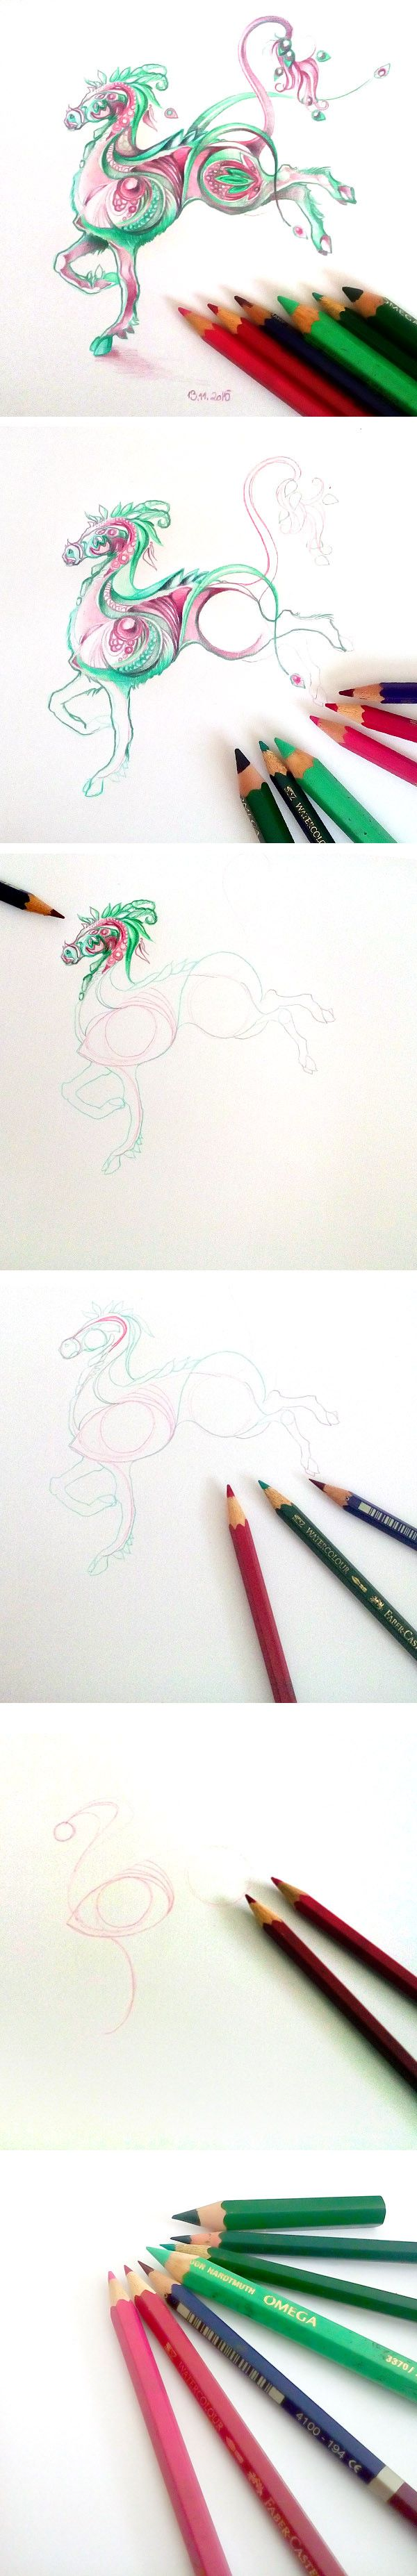 Fantasy horse step by step by #minkulul done with colored pencils.  My DA account: http://minkulul.deviantart.com/ #fantasy #mystical #creature #drawing #tutorial